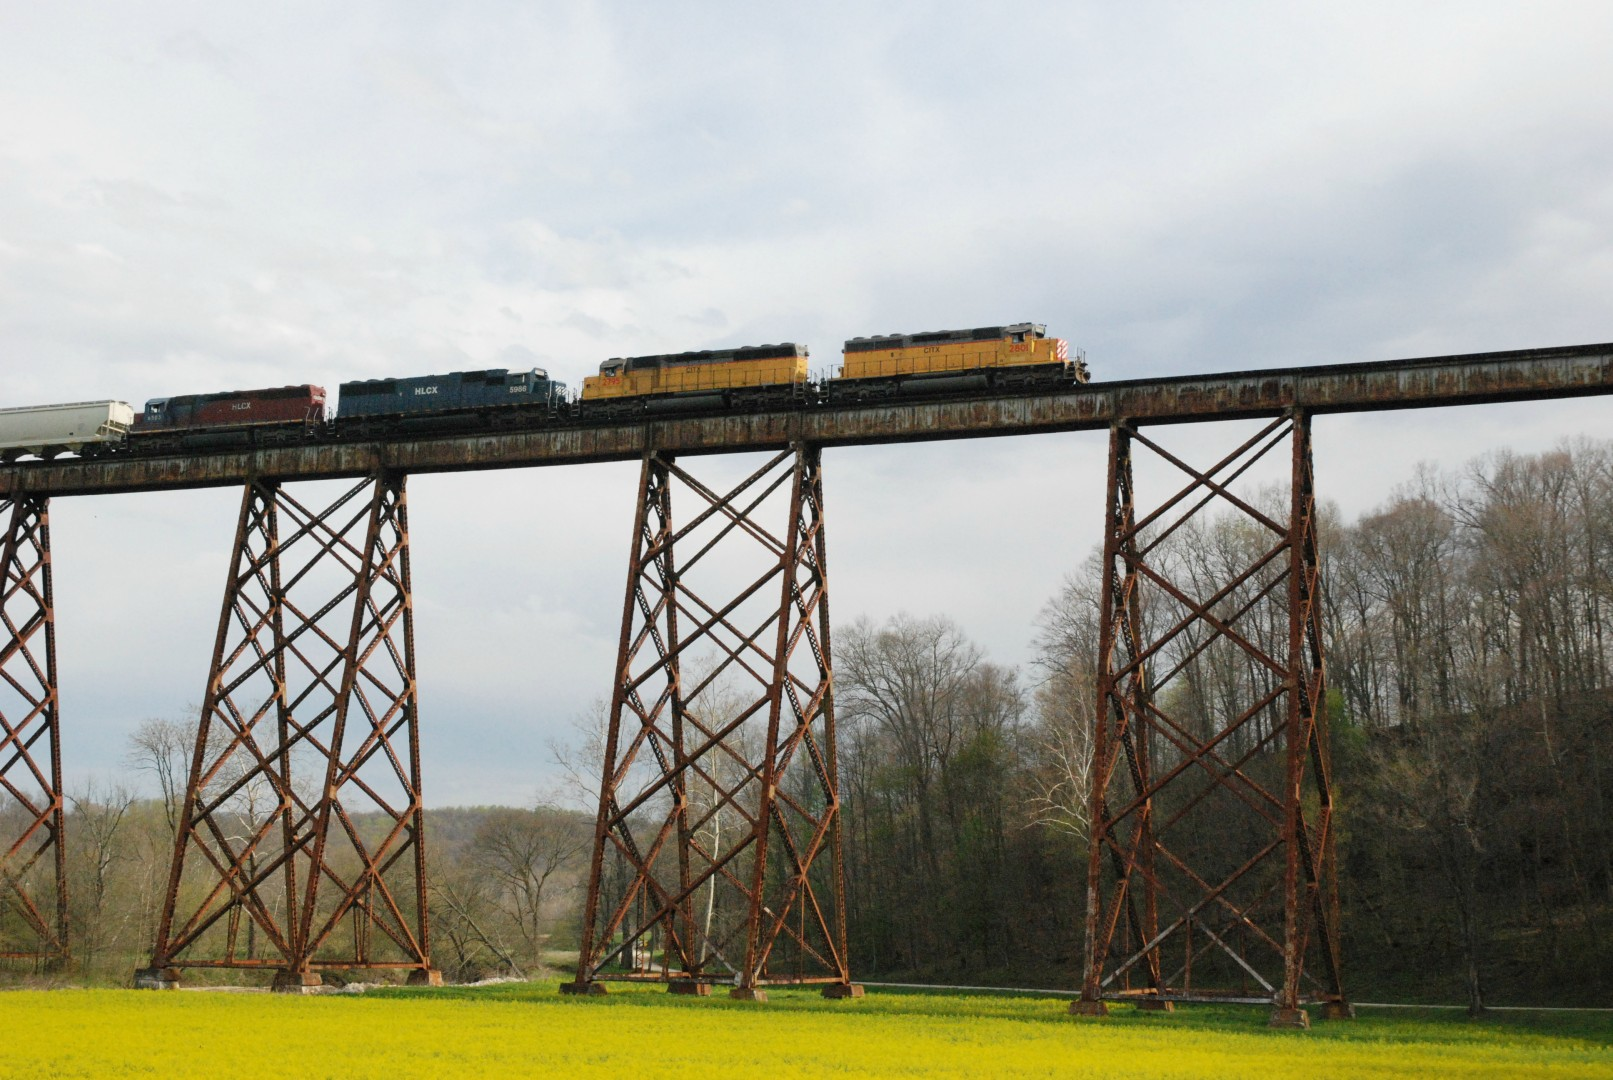 Greene County Tressel, http://www.visitgc.com/where-to-go/innovation/tulip-trestle/